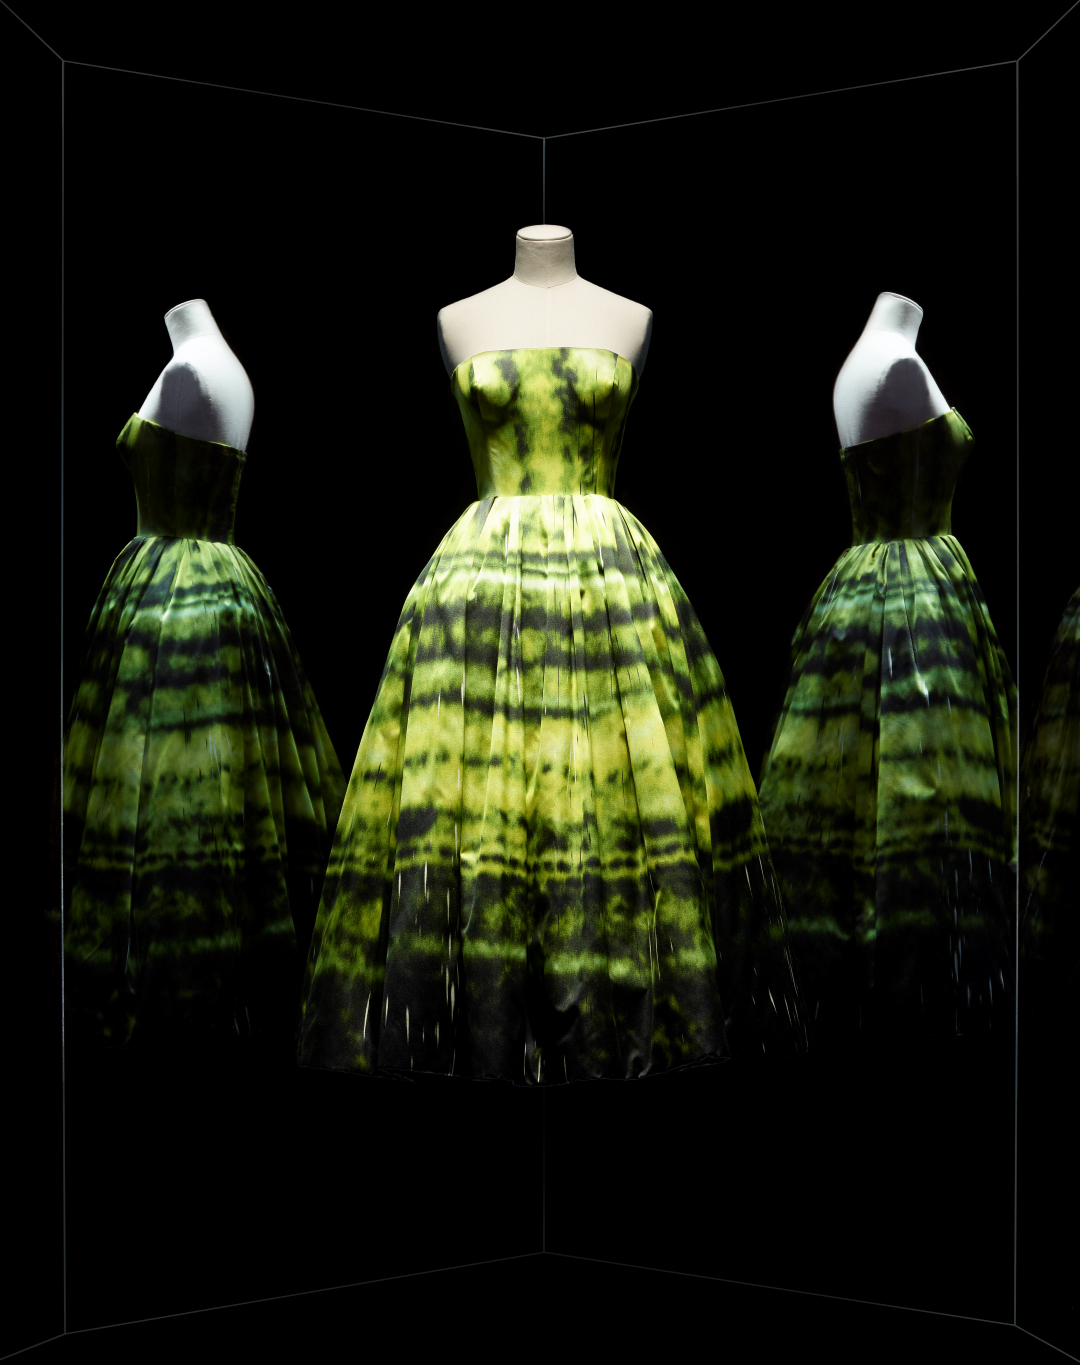 Dress by Raf Simons for Christian Dior, haute couture fall-winter 2012